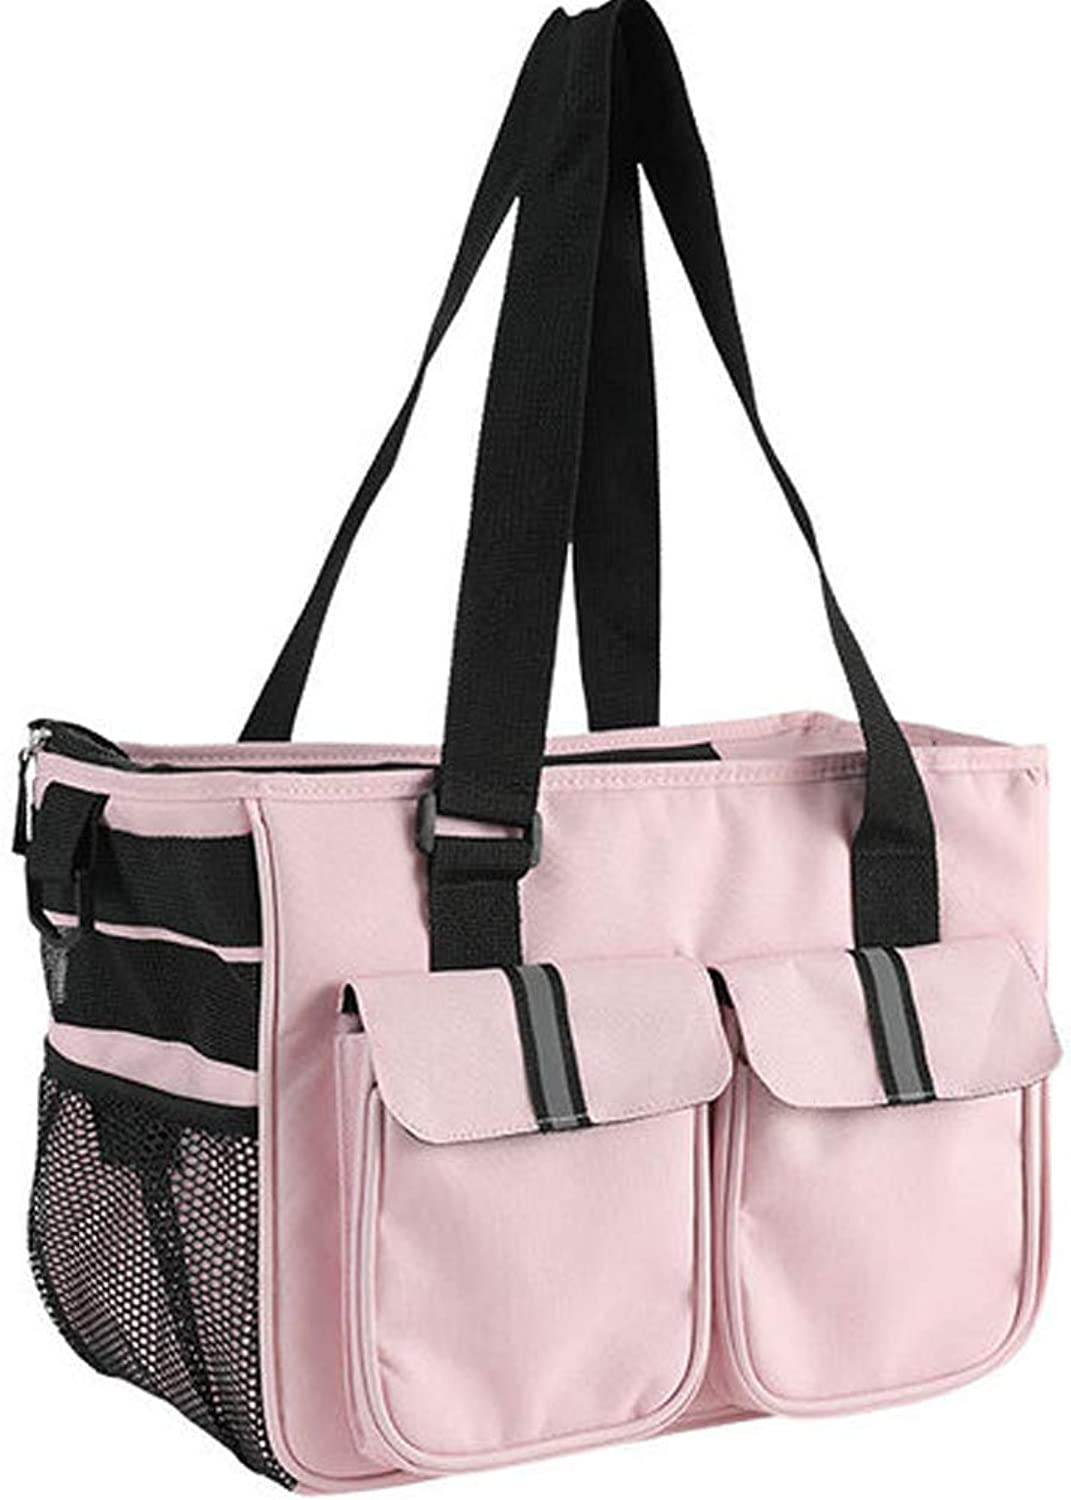 Dog Carrier Bag Pet Tote Bag with Safety Design and Oxford Fabric for Small Dogs Cats Hiking